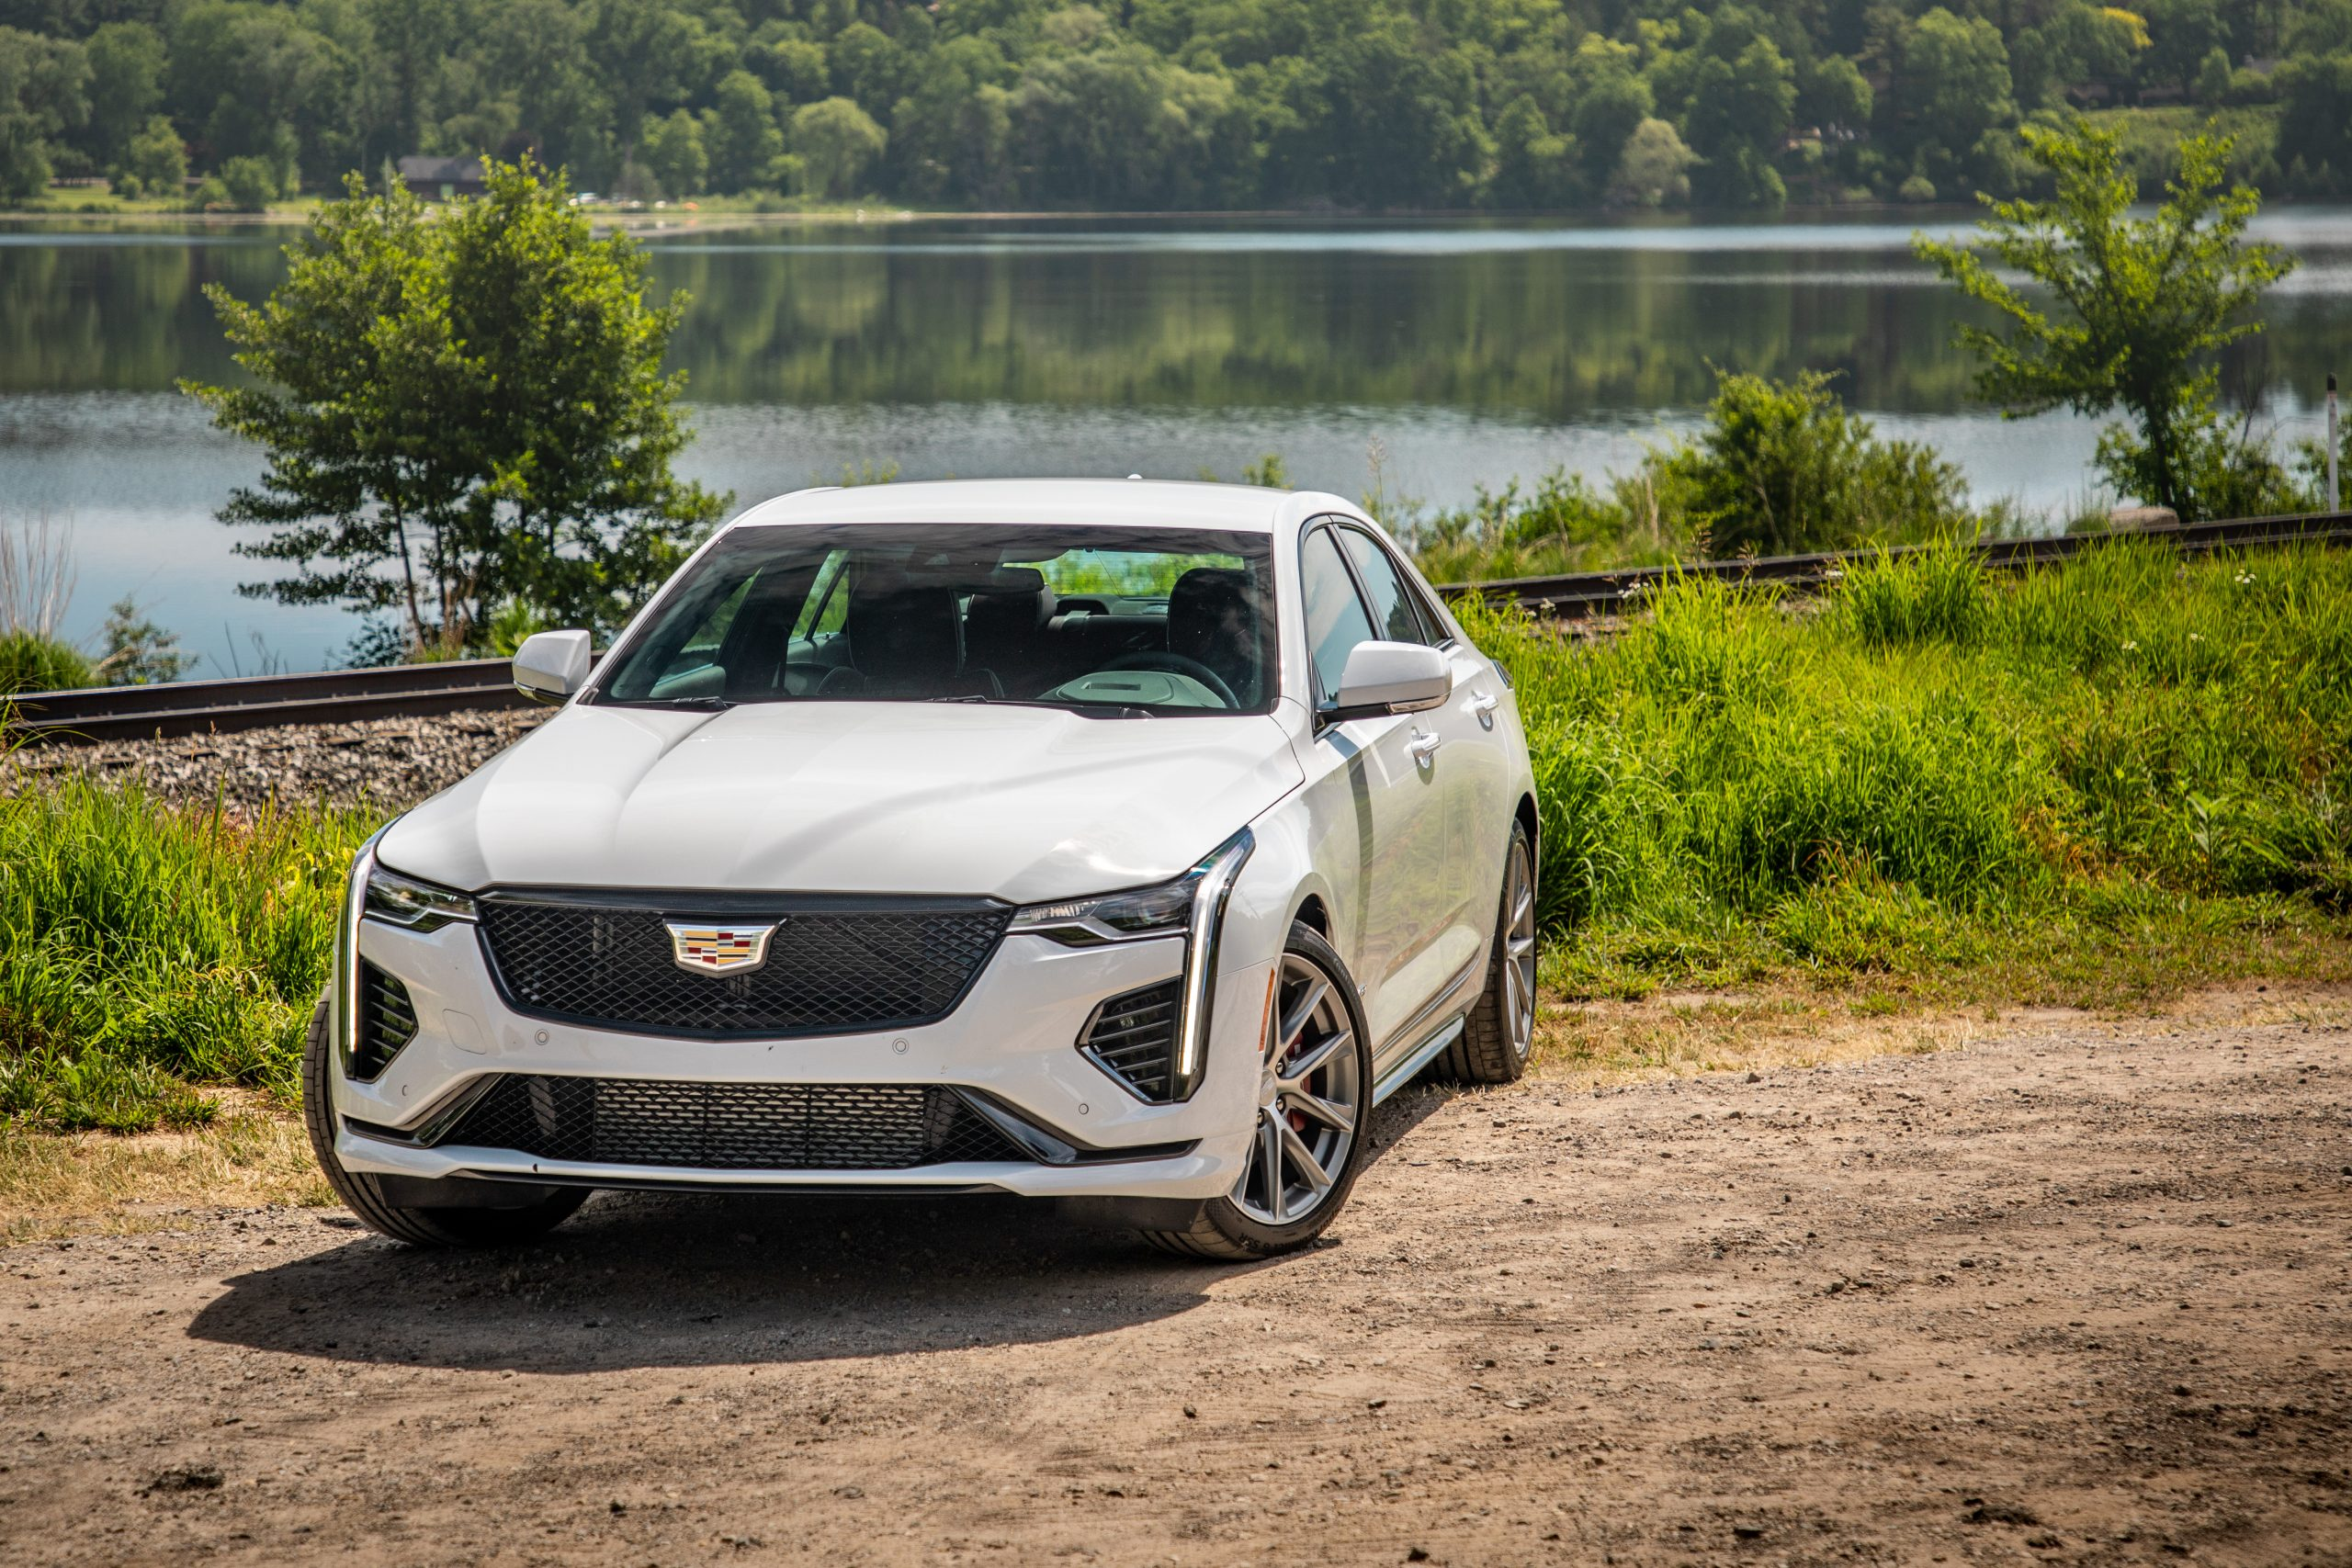 2020 Cadillac CT4-V front three-quarter